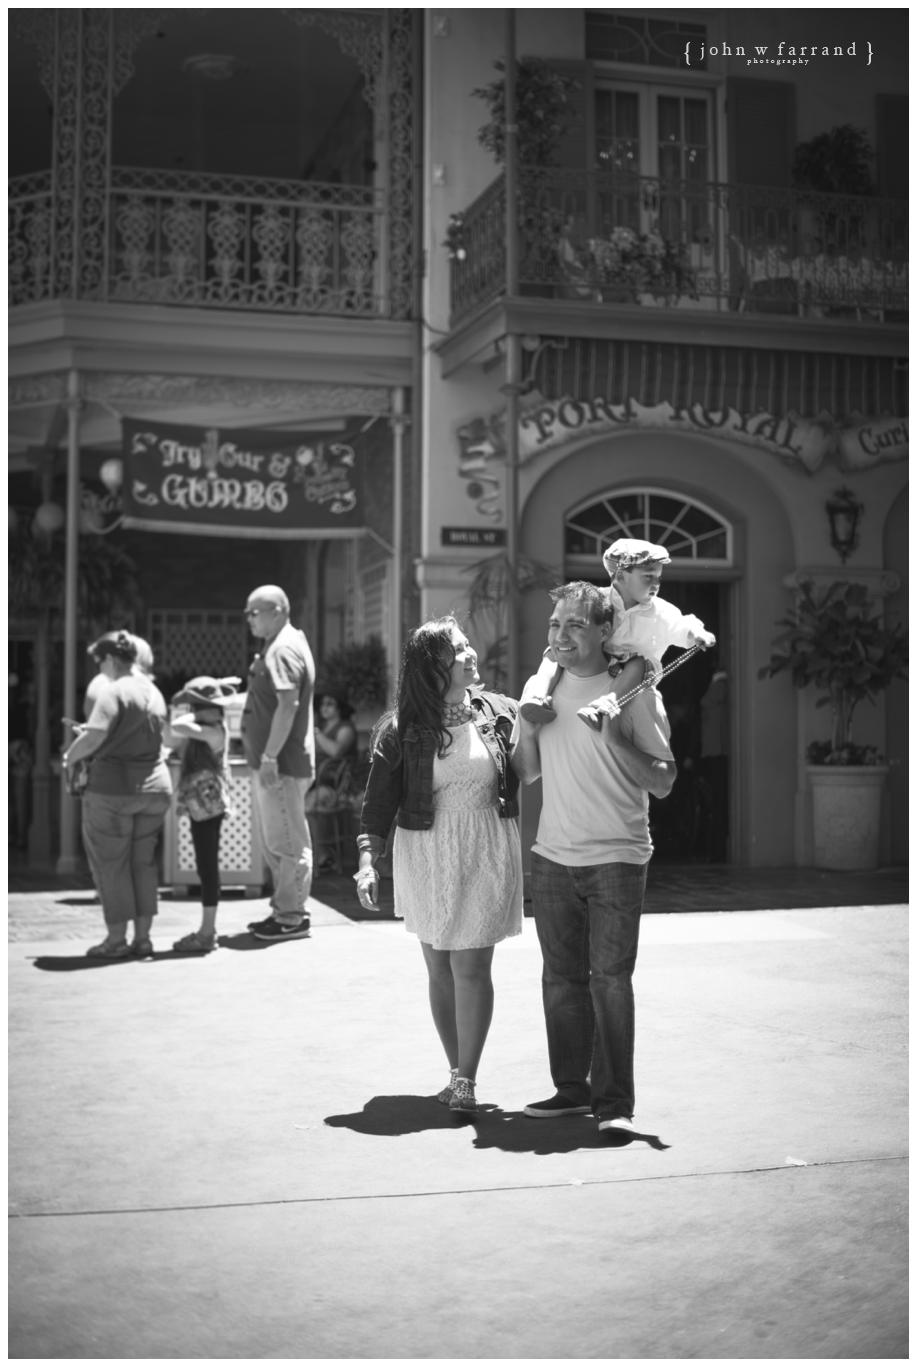 Disneyland-Family-Photography-Bautista_016.jpg